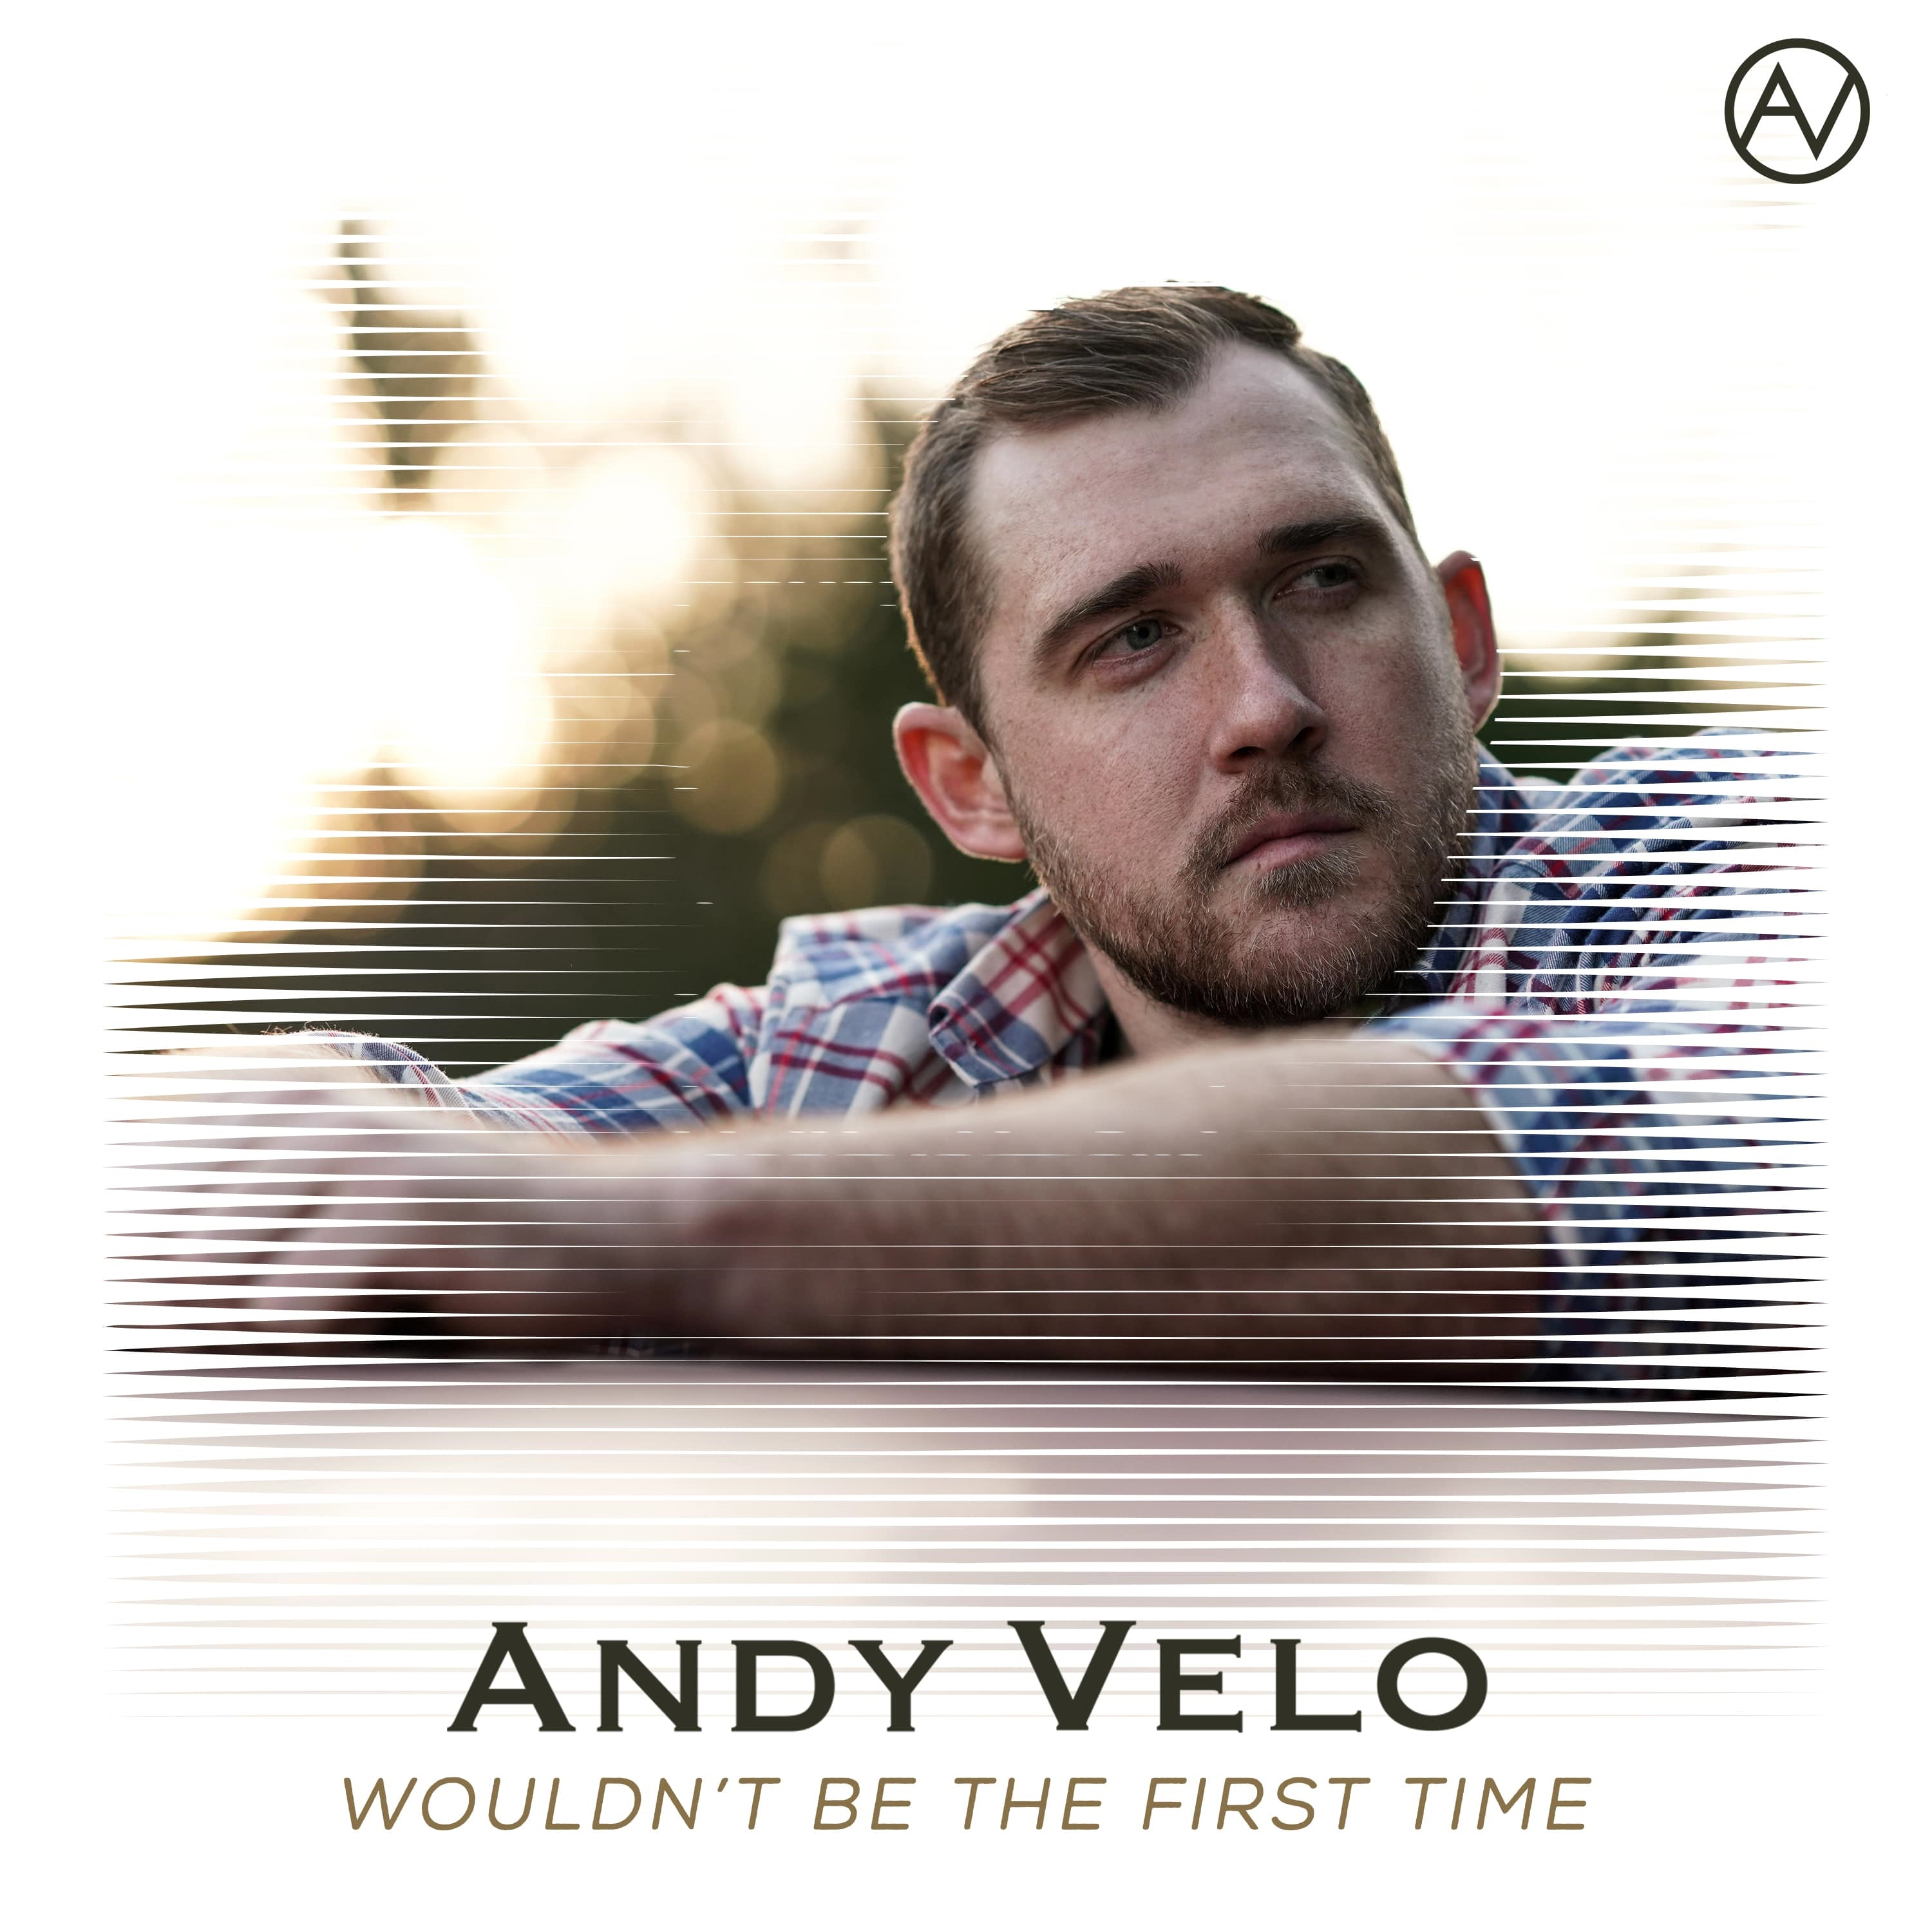 Andy Velo; Photo credit: Dustin Haney